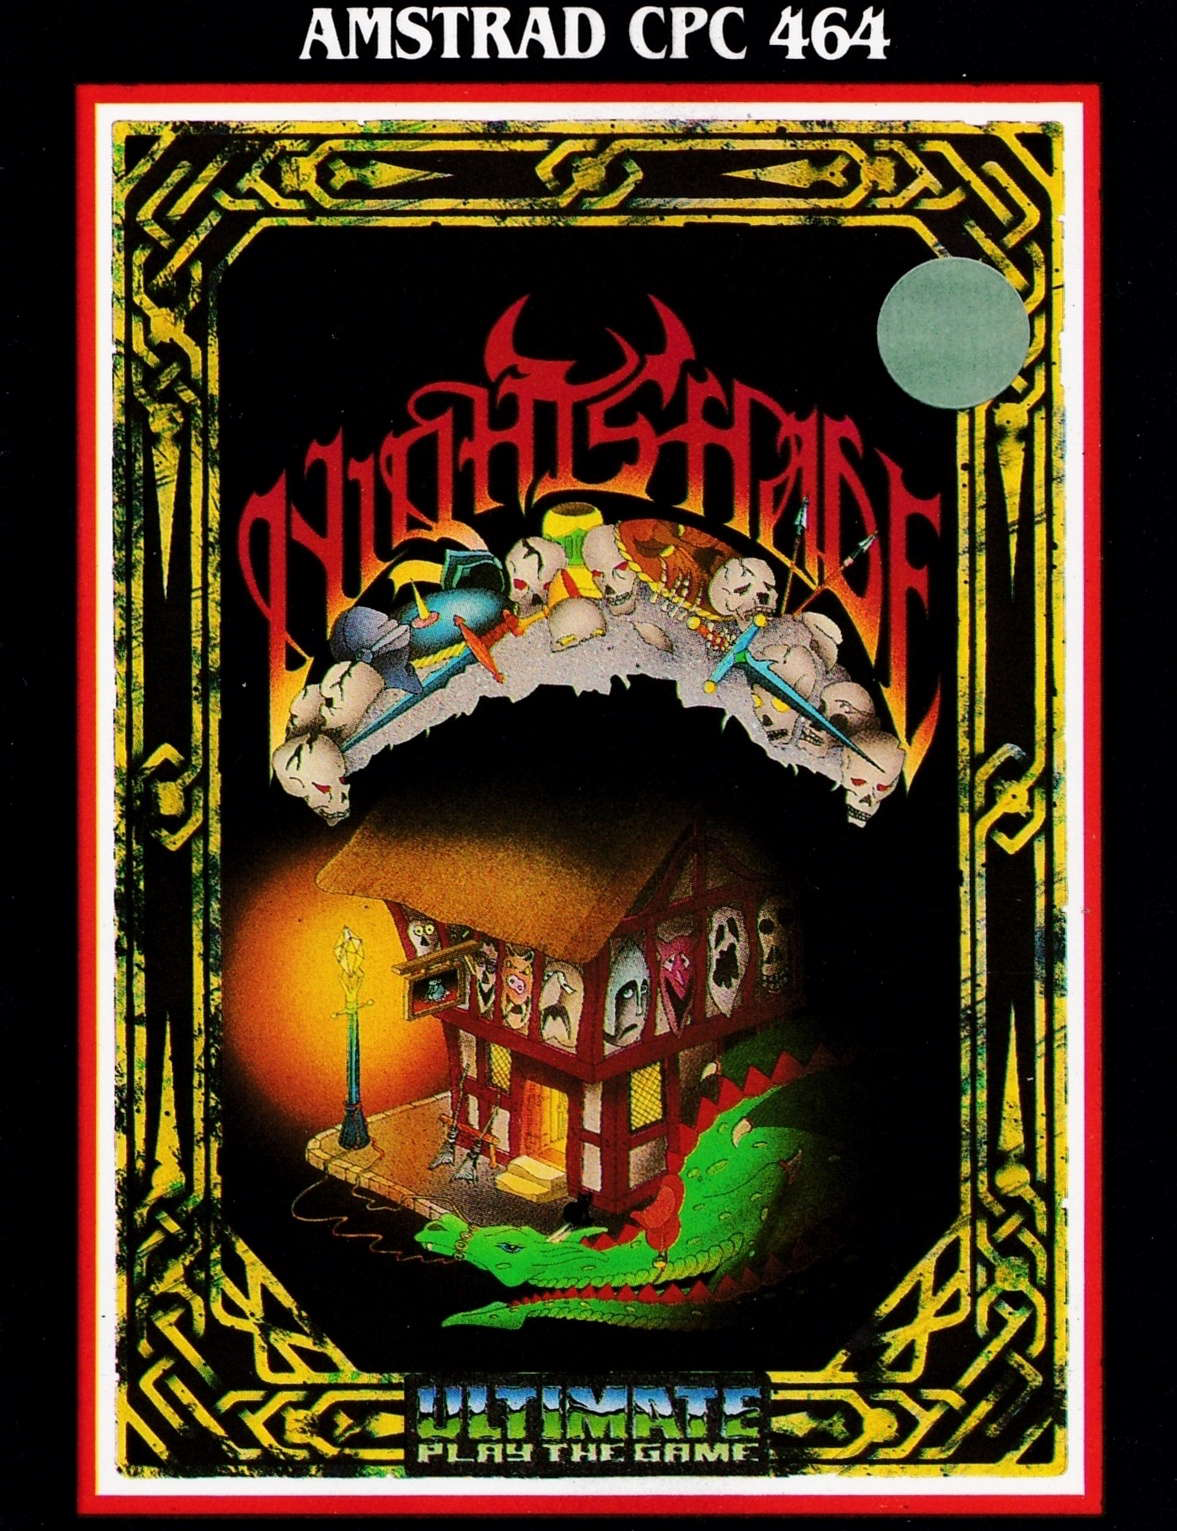 cover of the Amstrad CPC game Night Shade  by GameBase CPC